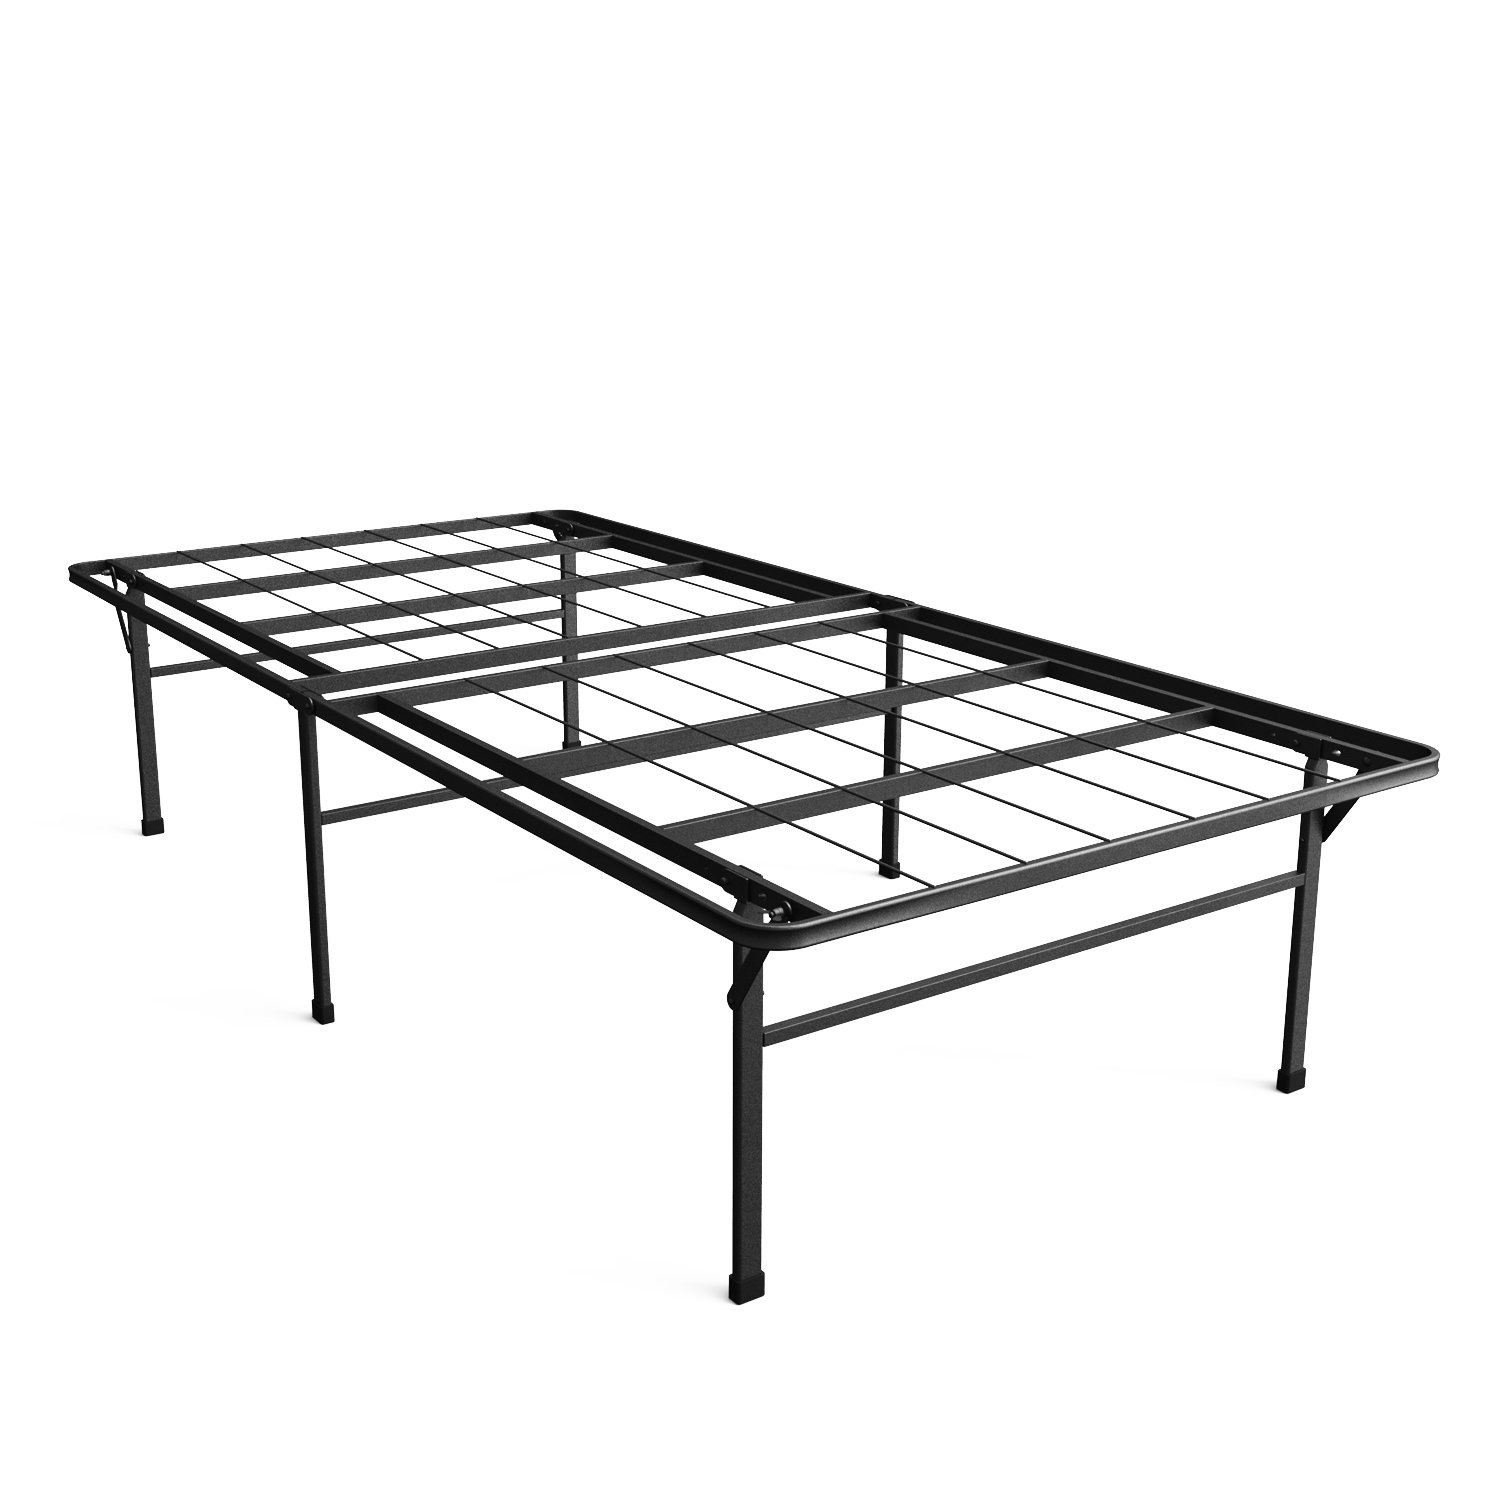 Zinus Casey 18 Inch Premium SmartBase Mattress Foundation / 4 Extra Inches high for Under-bed Storage / Platform Bed Frame / Box Spring Replacement / Strong / Sturdy / Quiet Noise-Free, Twin XL by Zinus